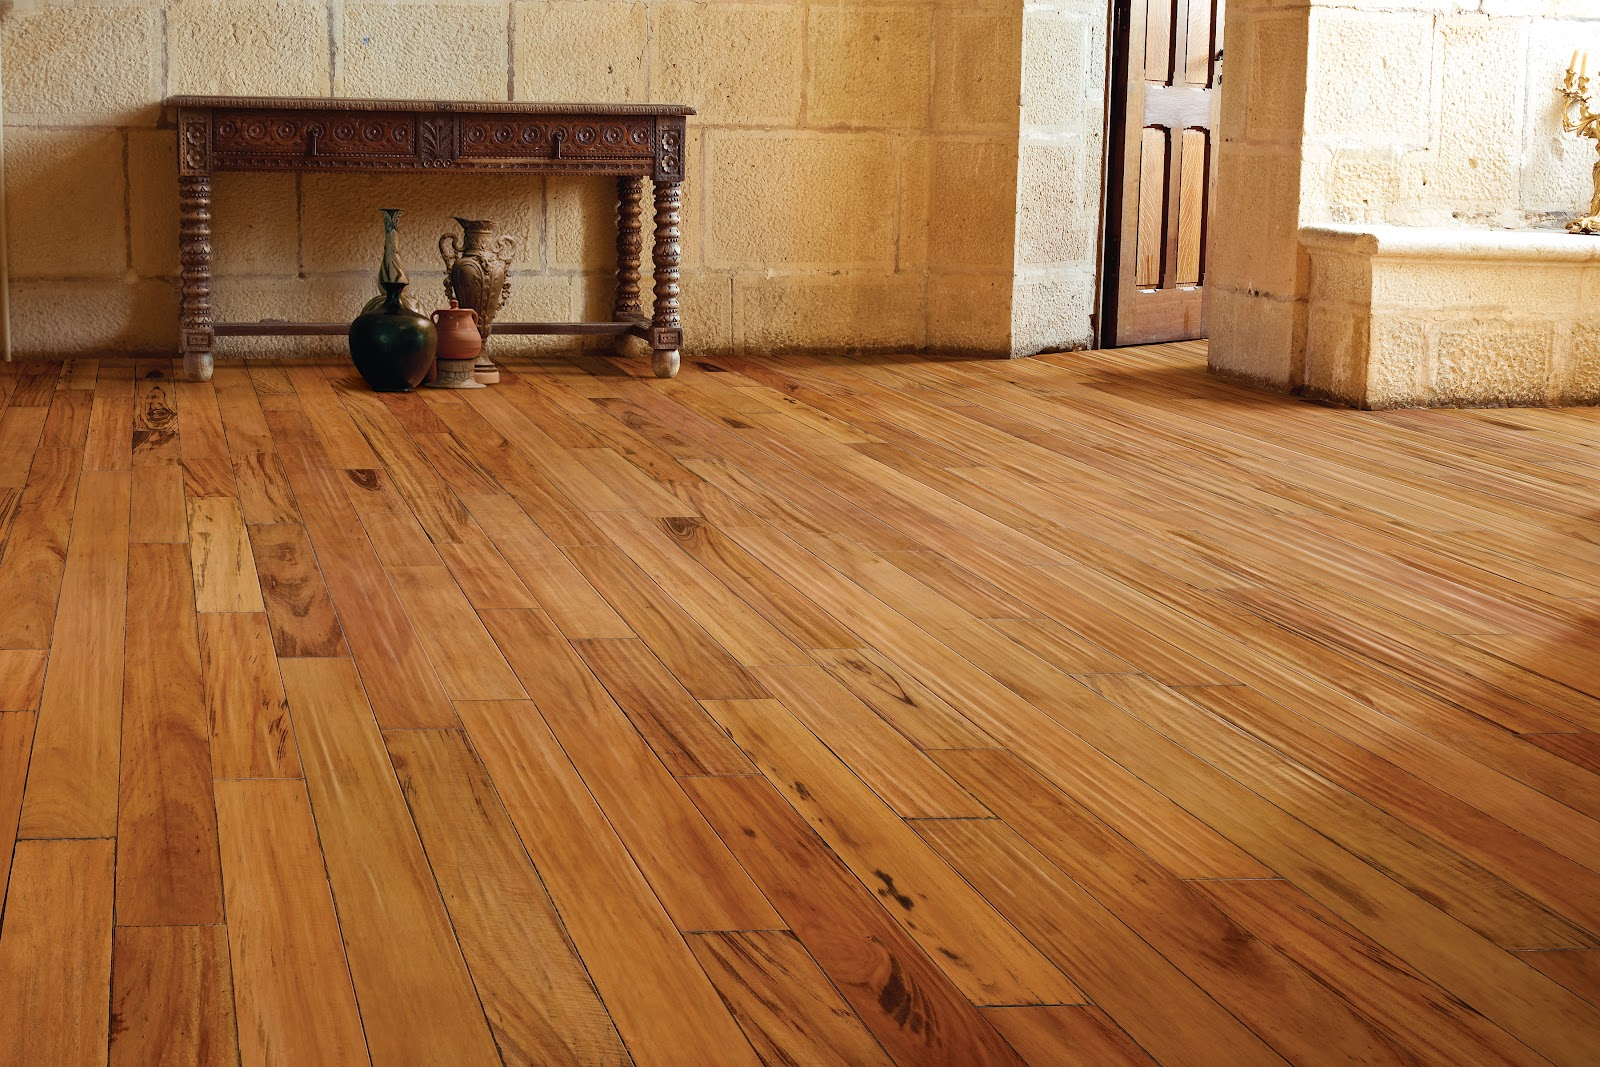 Wooden Tiles Blog Wooden Tiles A Piece Of Esthetic Excellence